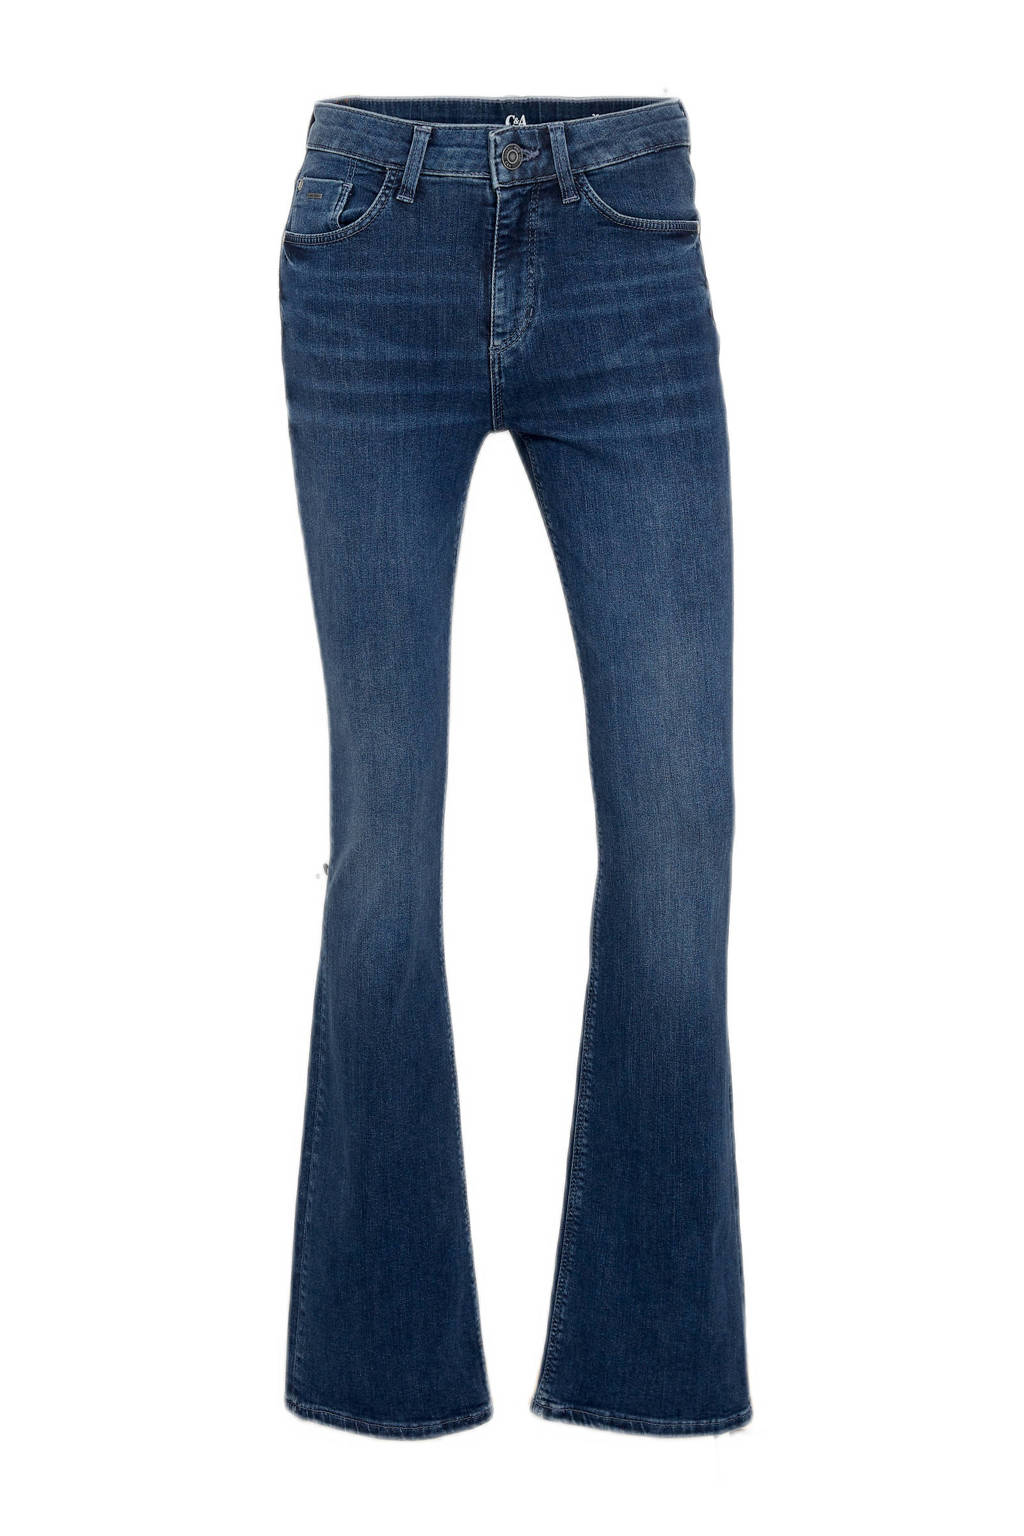 C&A bootcut jeans donkerblauw, Donkerblauw